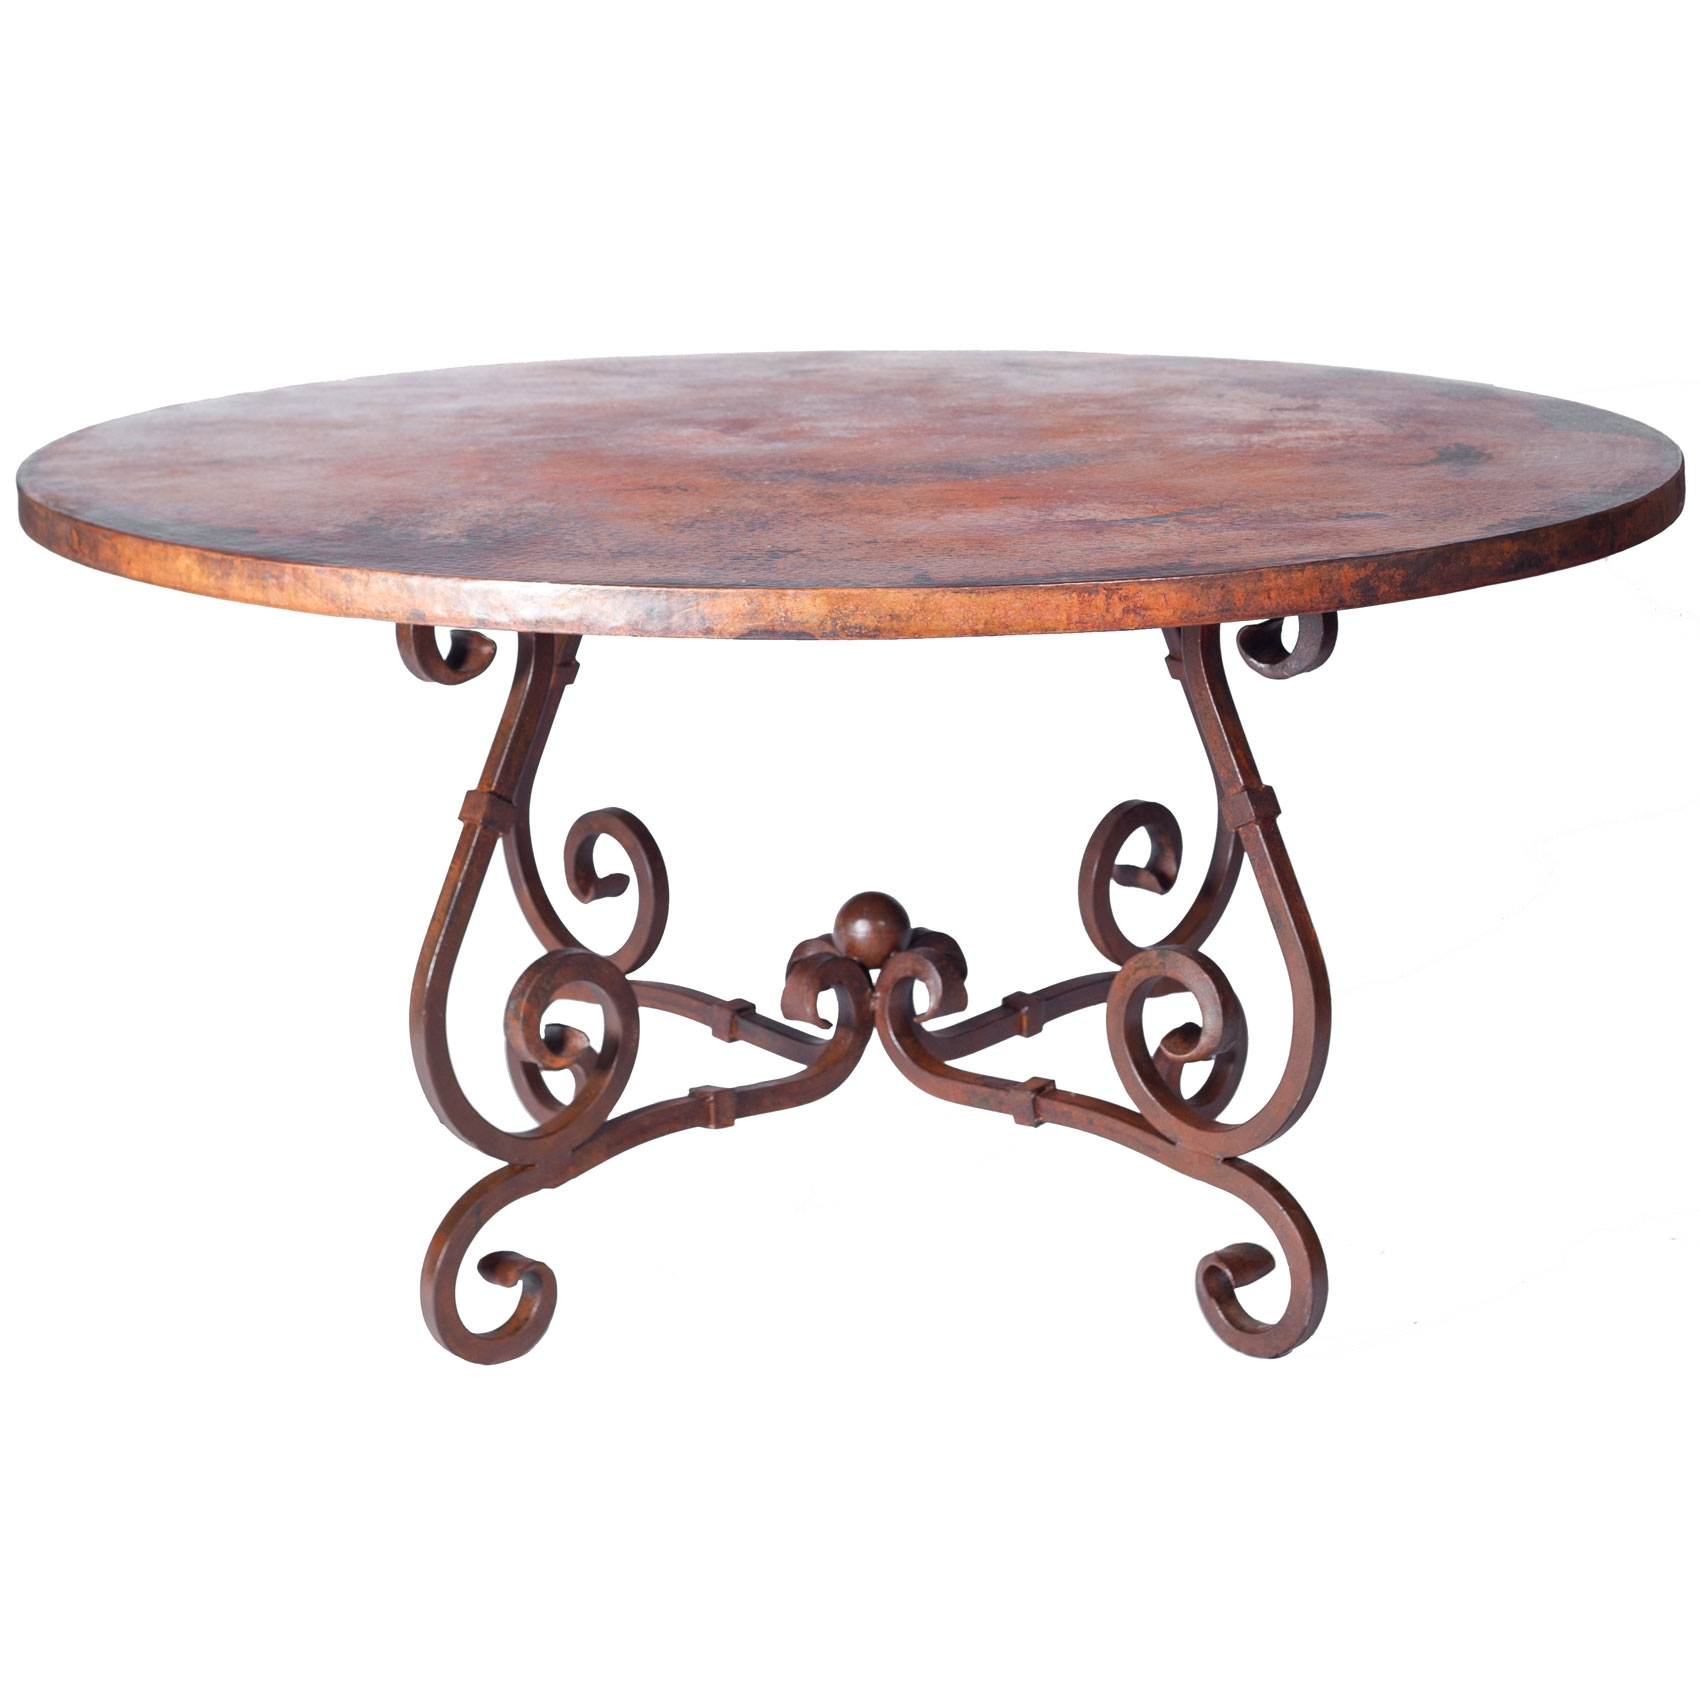 larger photo - French Dining Table